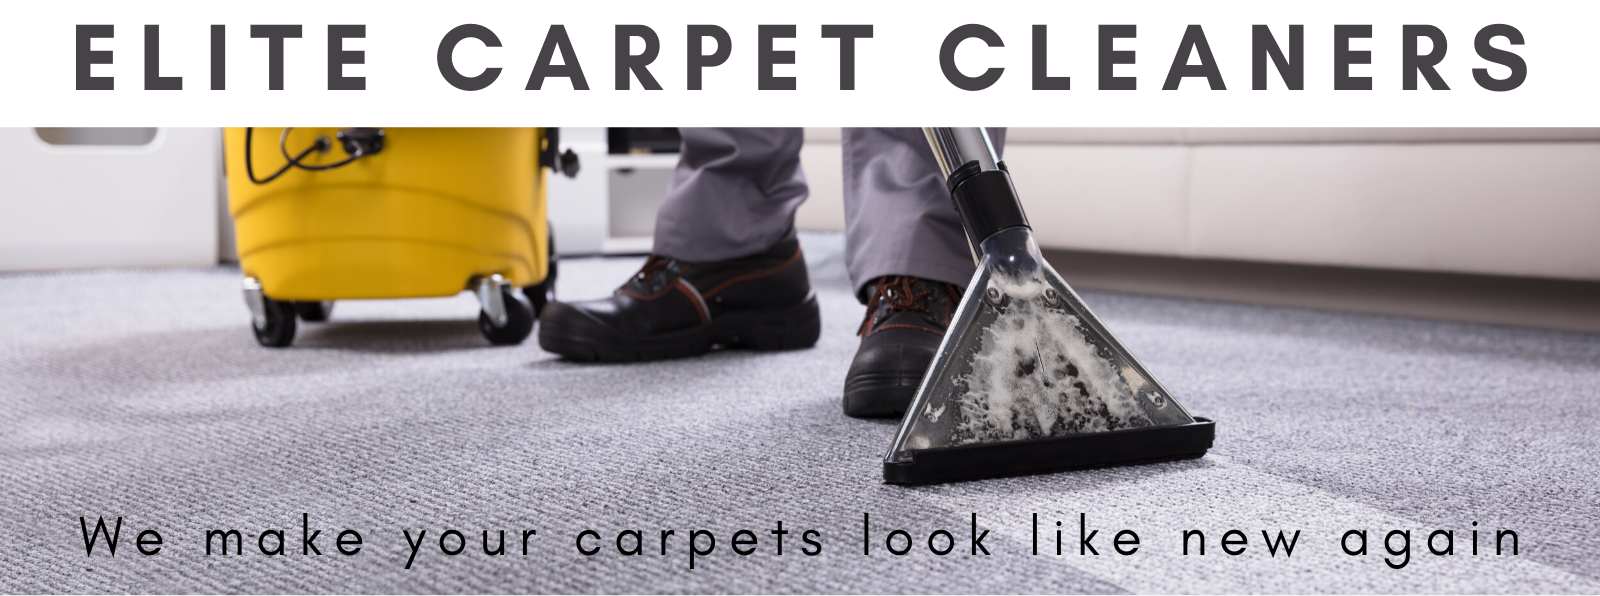 Elite Carpet Cleaners